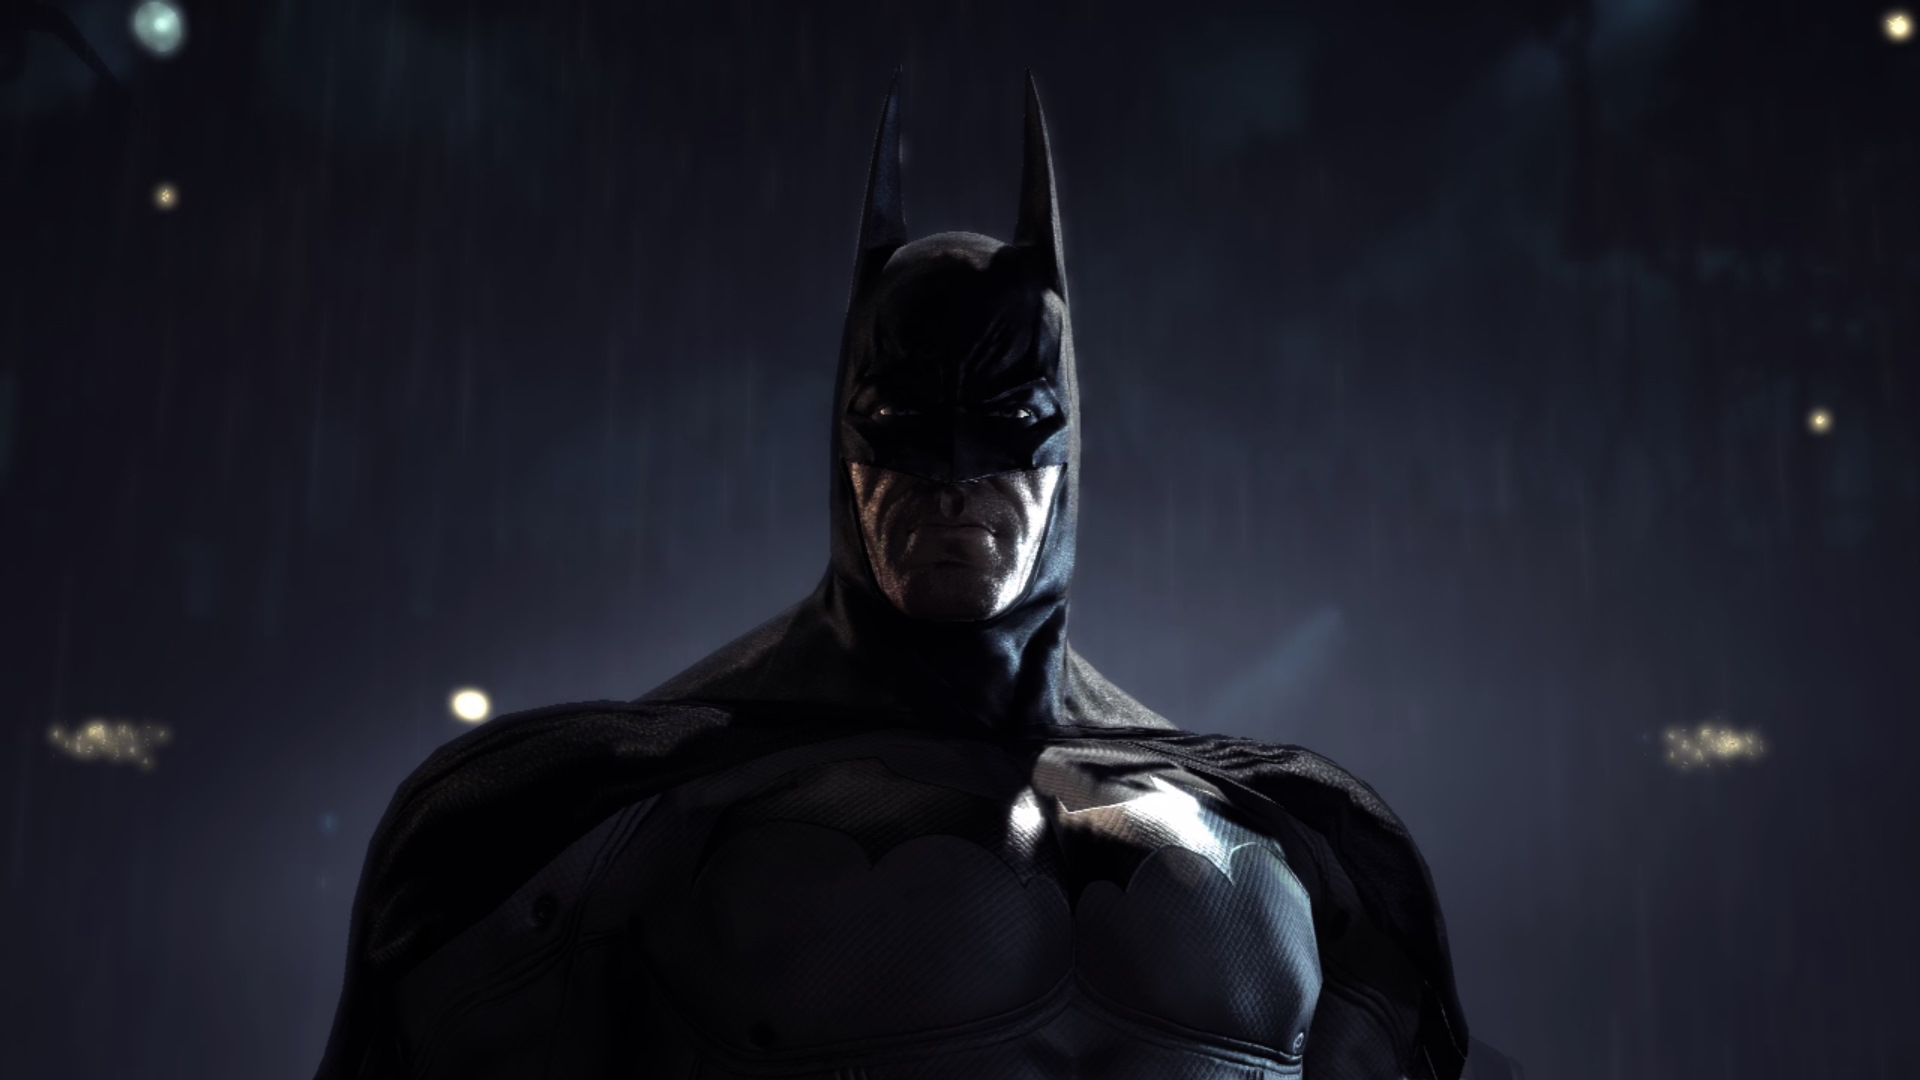 Batman Wallpaper wallpaper Batman Wallpaper hd wallpaper background 1920x1080